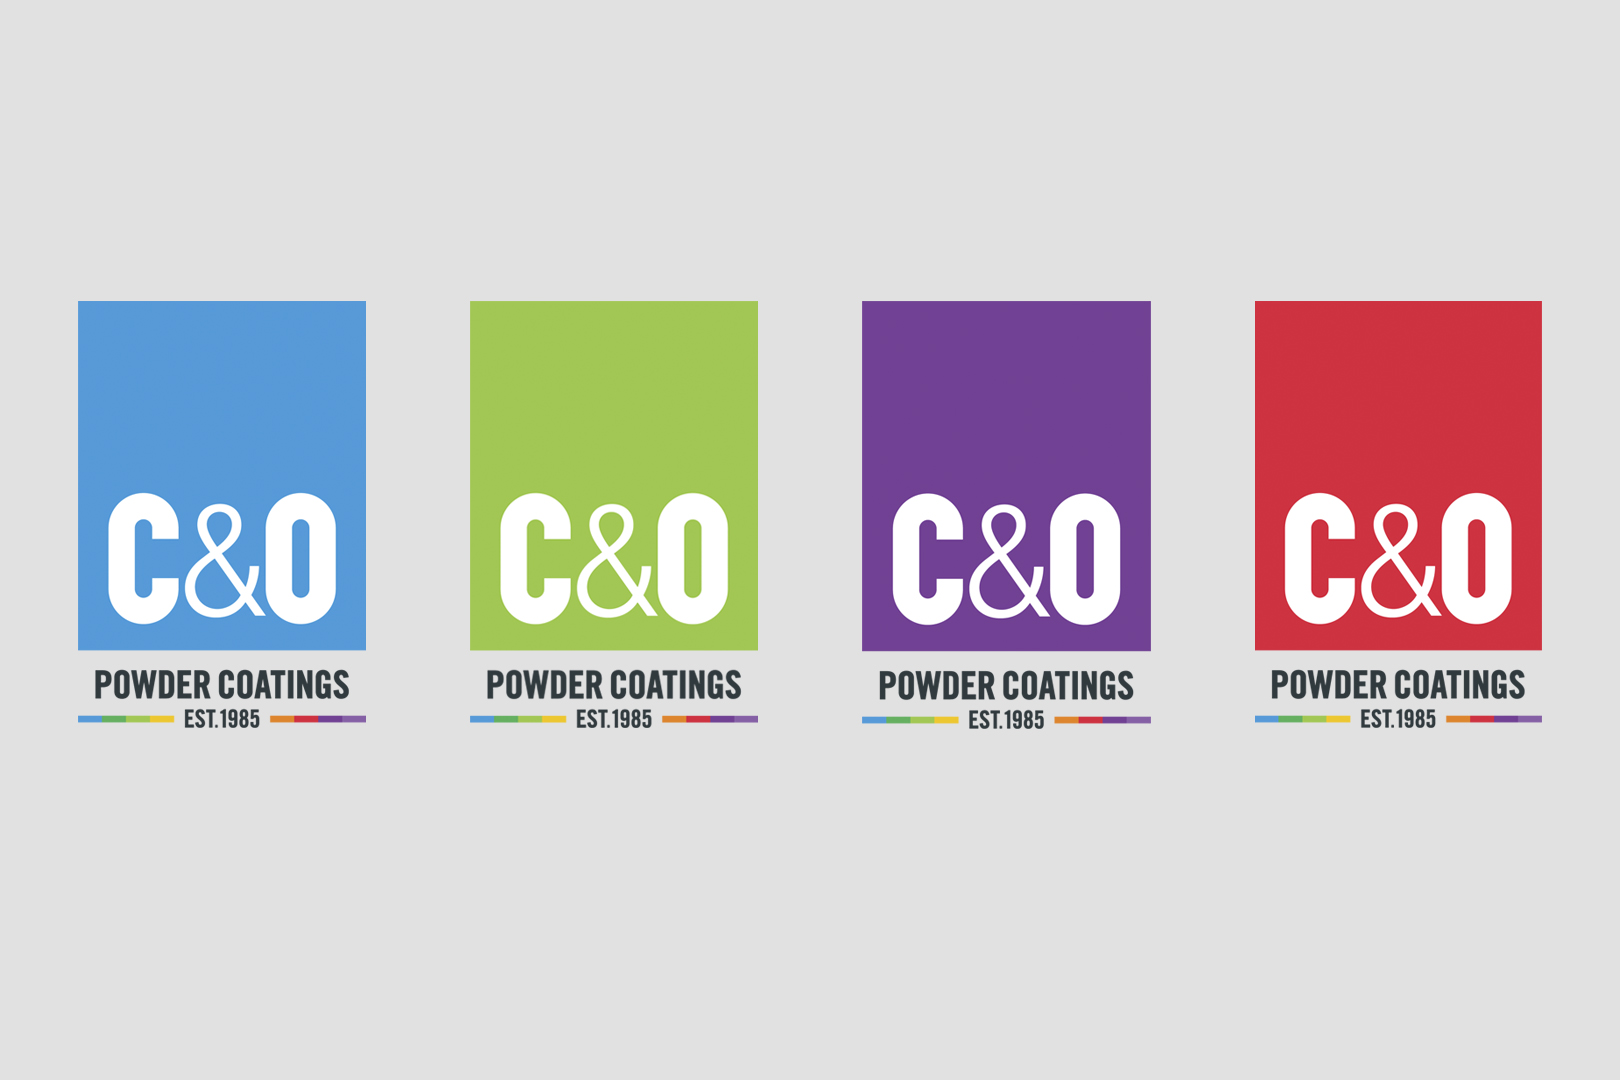 C&O Powder Coatings